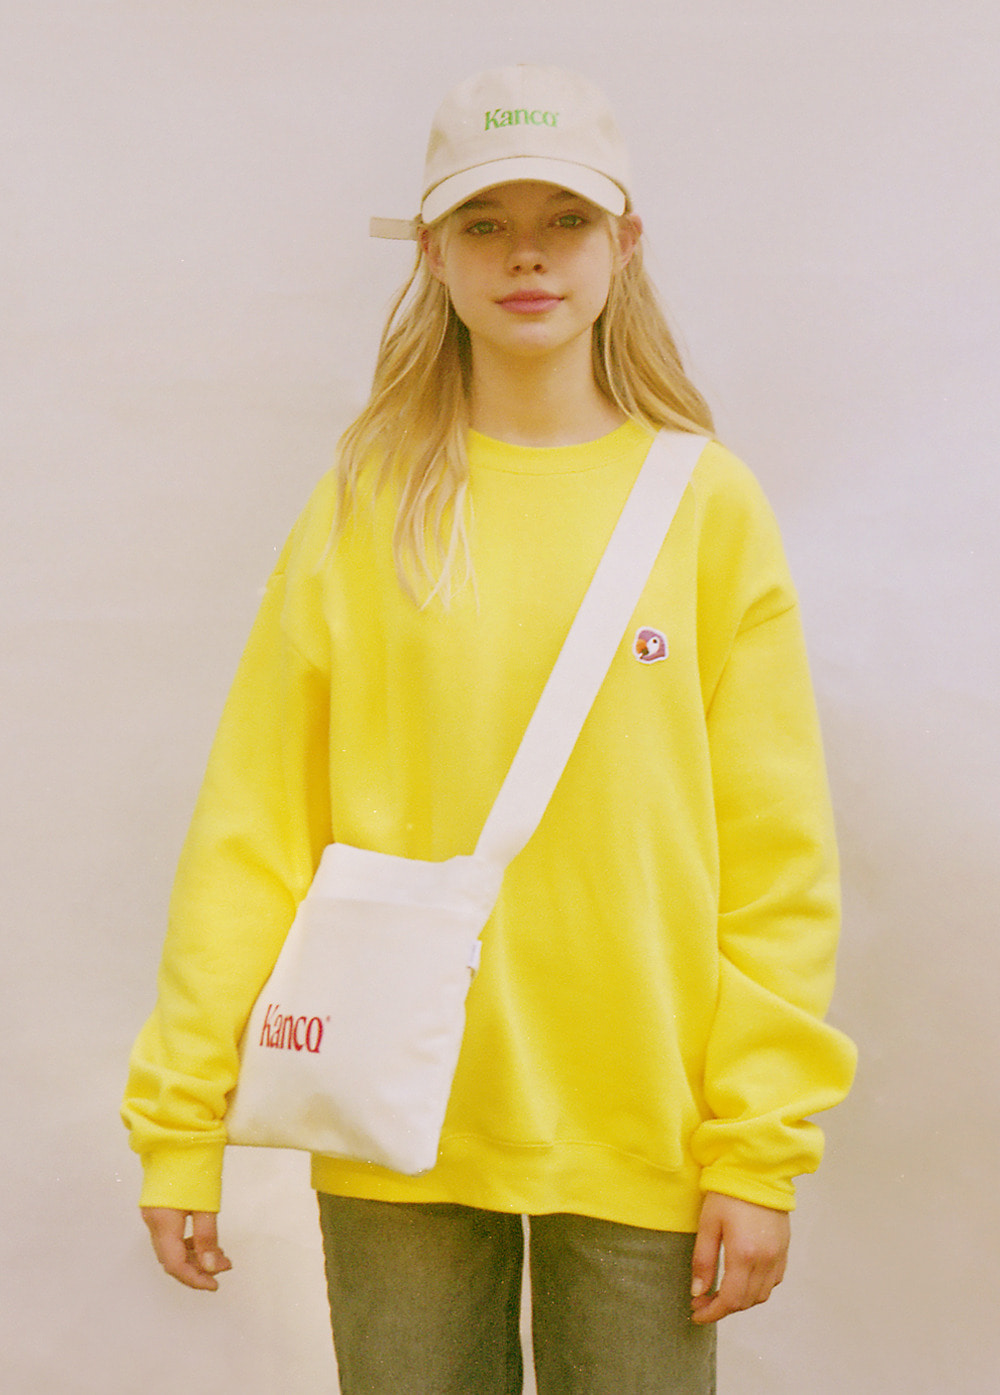 KANCO LOGO SWEATSHIRT yellow